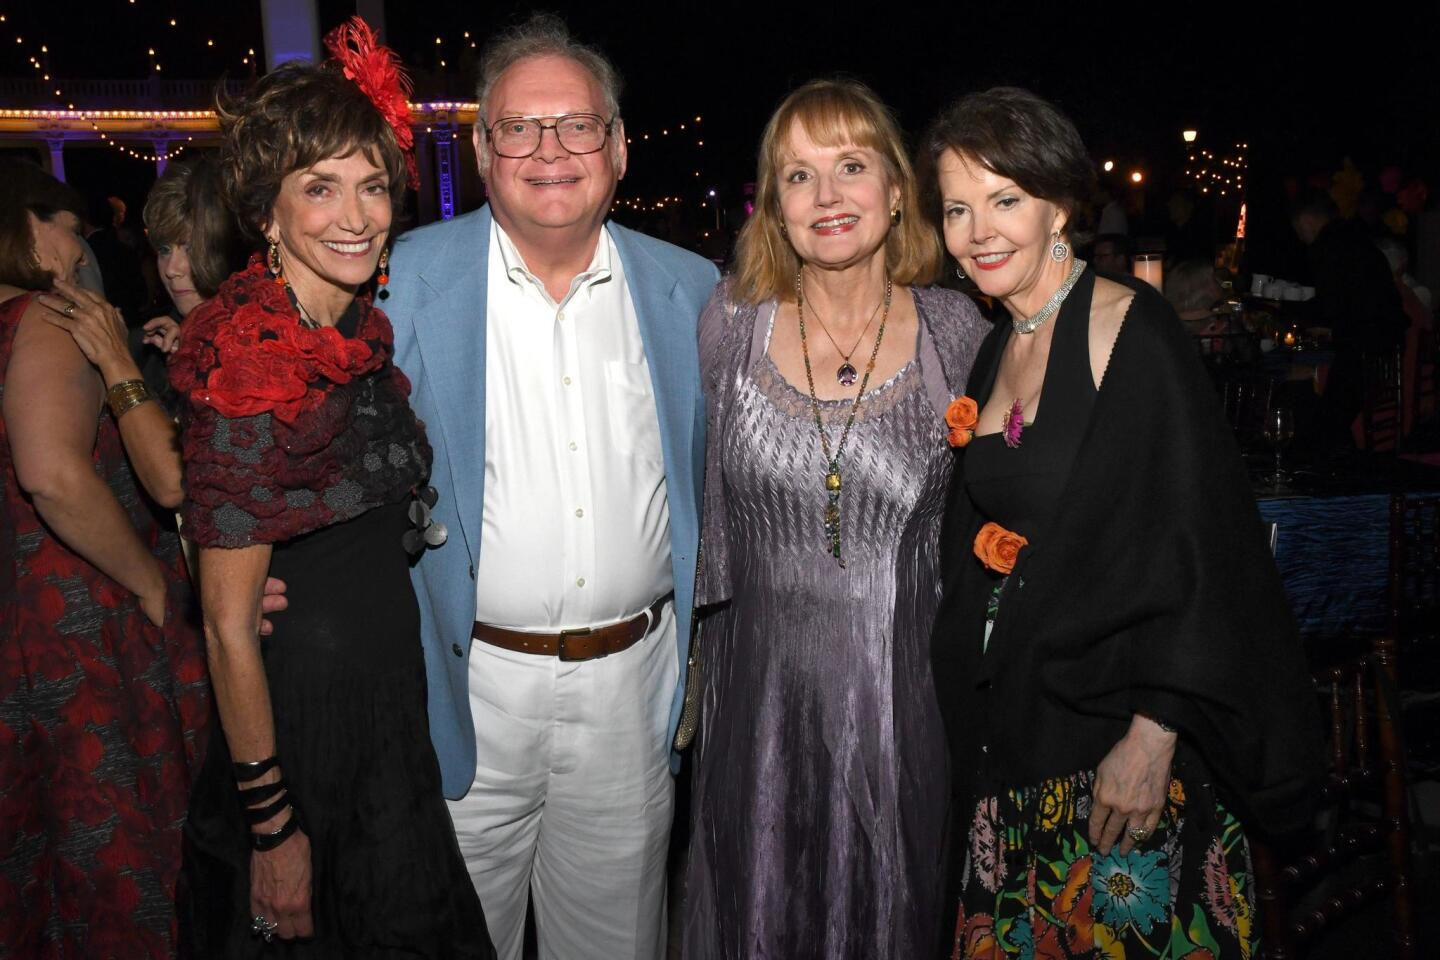 Joyce Gattas, Jay and Julie Sarno, Laurel McCrink